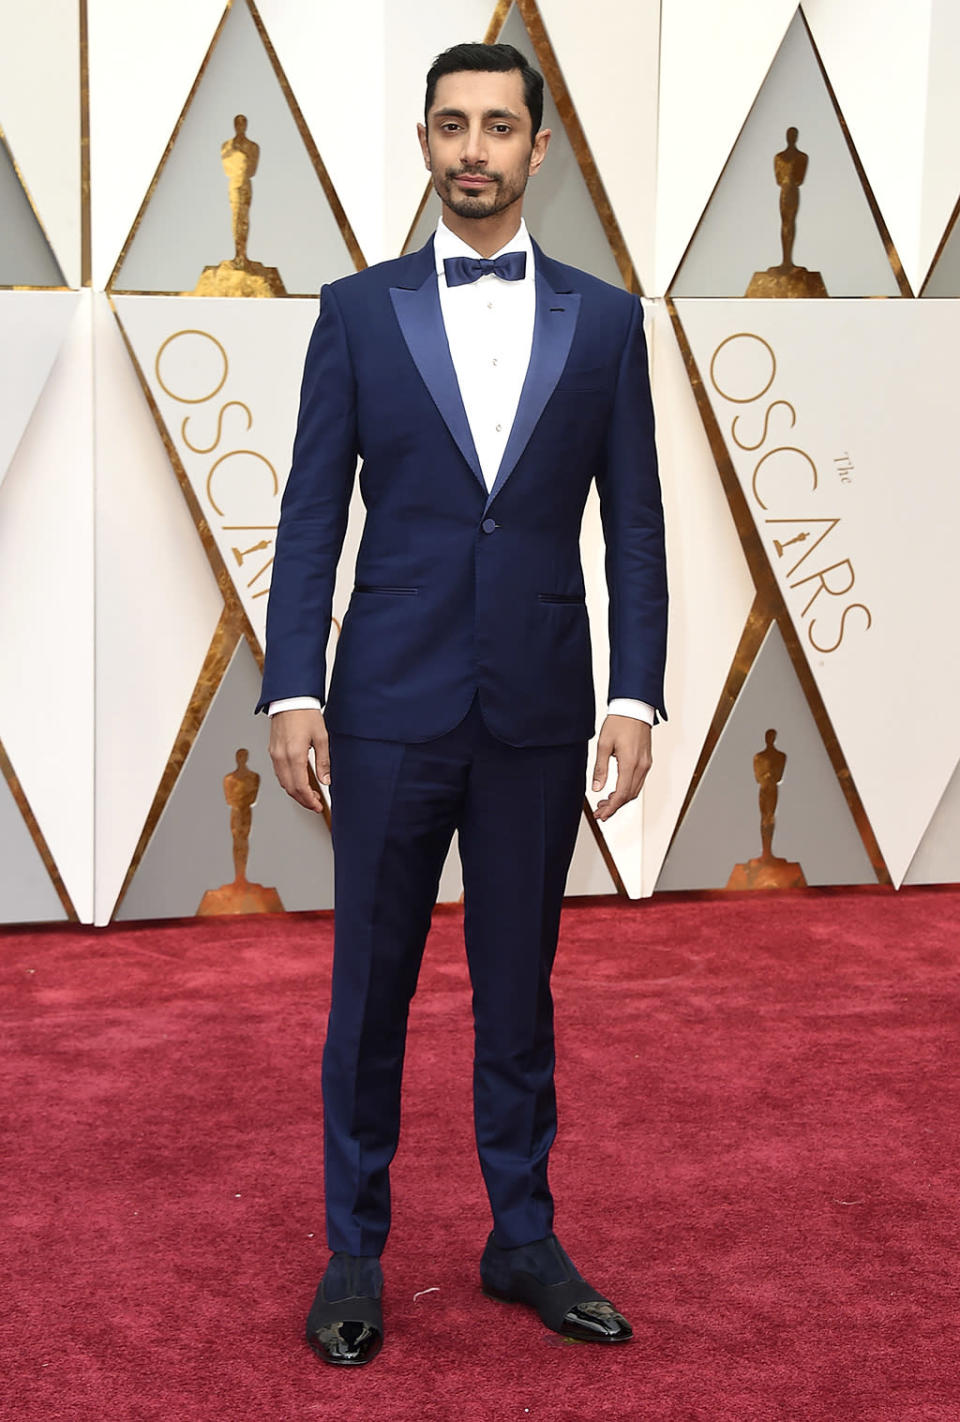 <p>Riz Ahmed arrives at the Oscars on Sunday, Feb. 26, 2017, at the Dolby Theatre in Los Angeles. (Photo by Jordan Strauss/Invision/AP) </p>